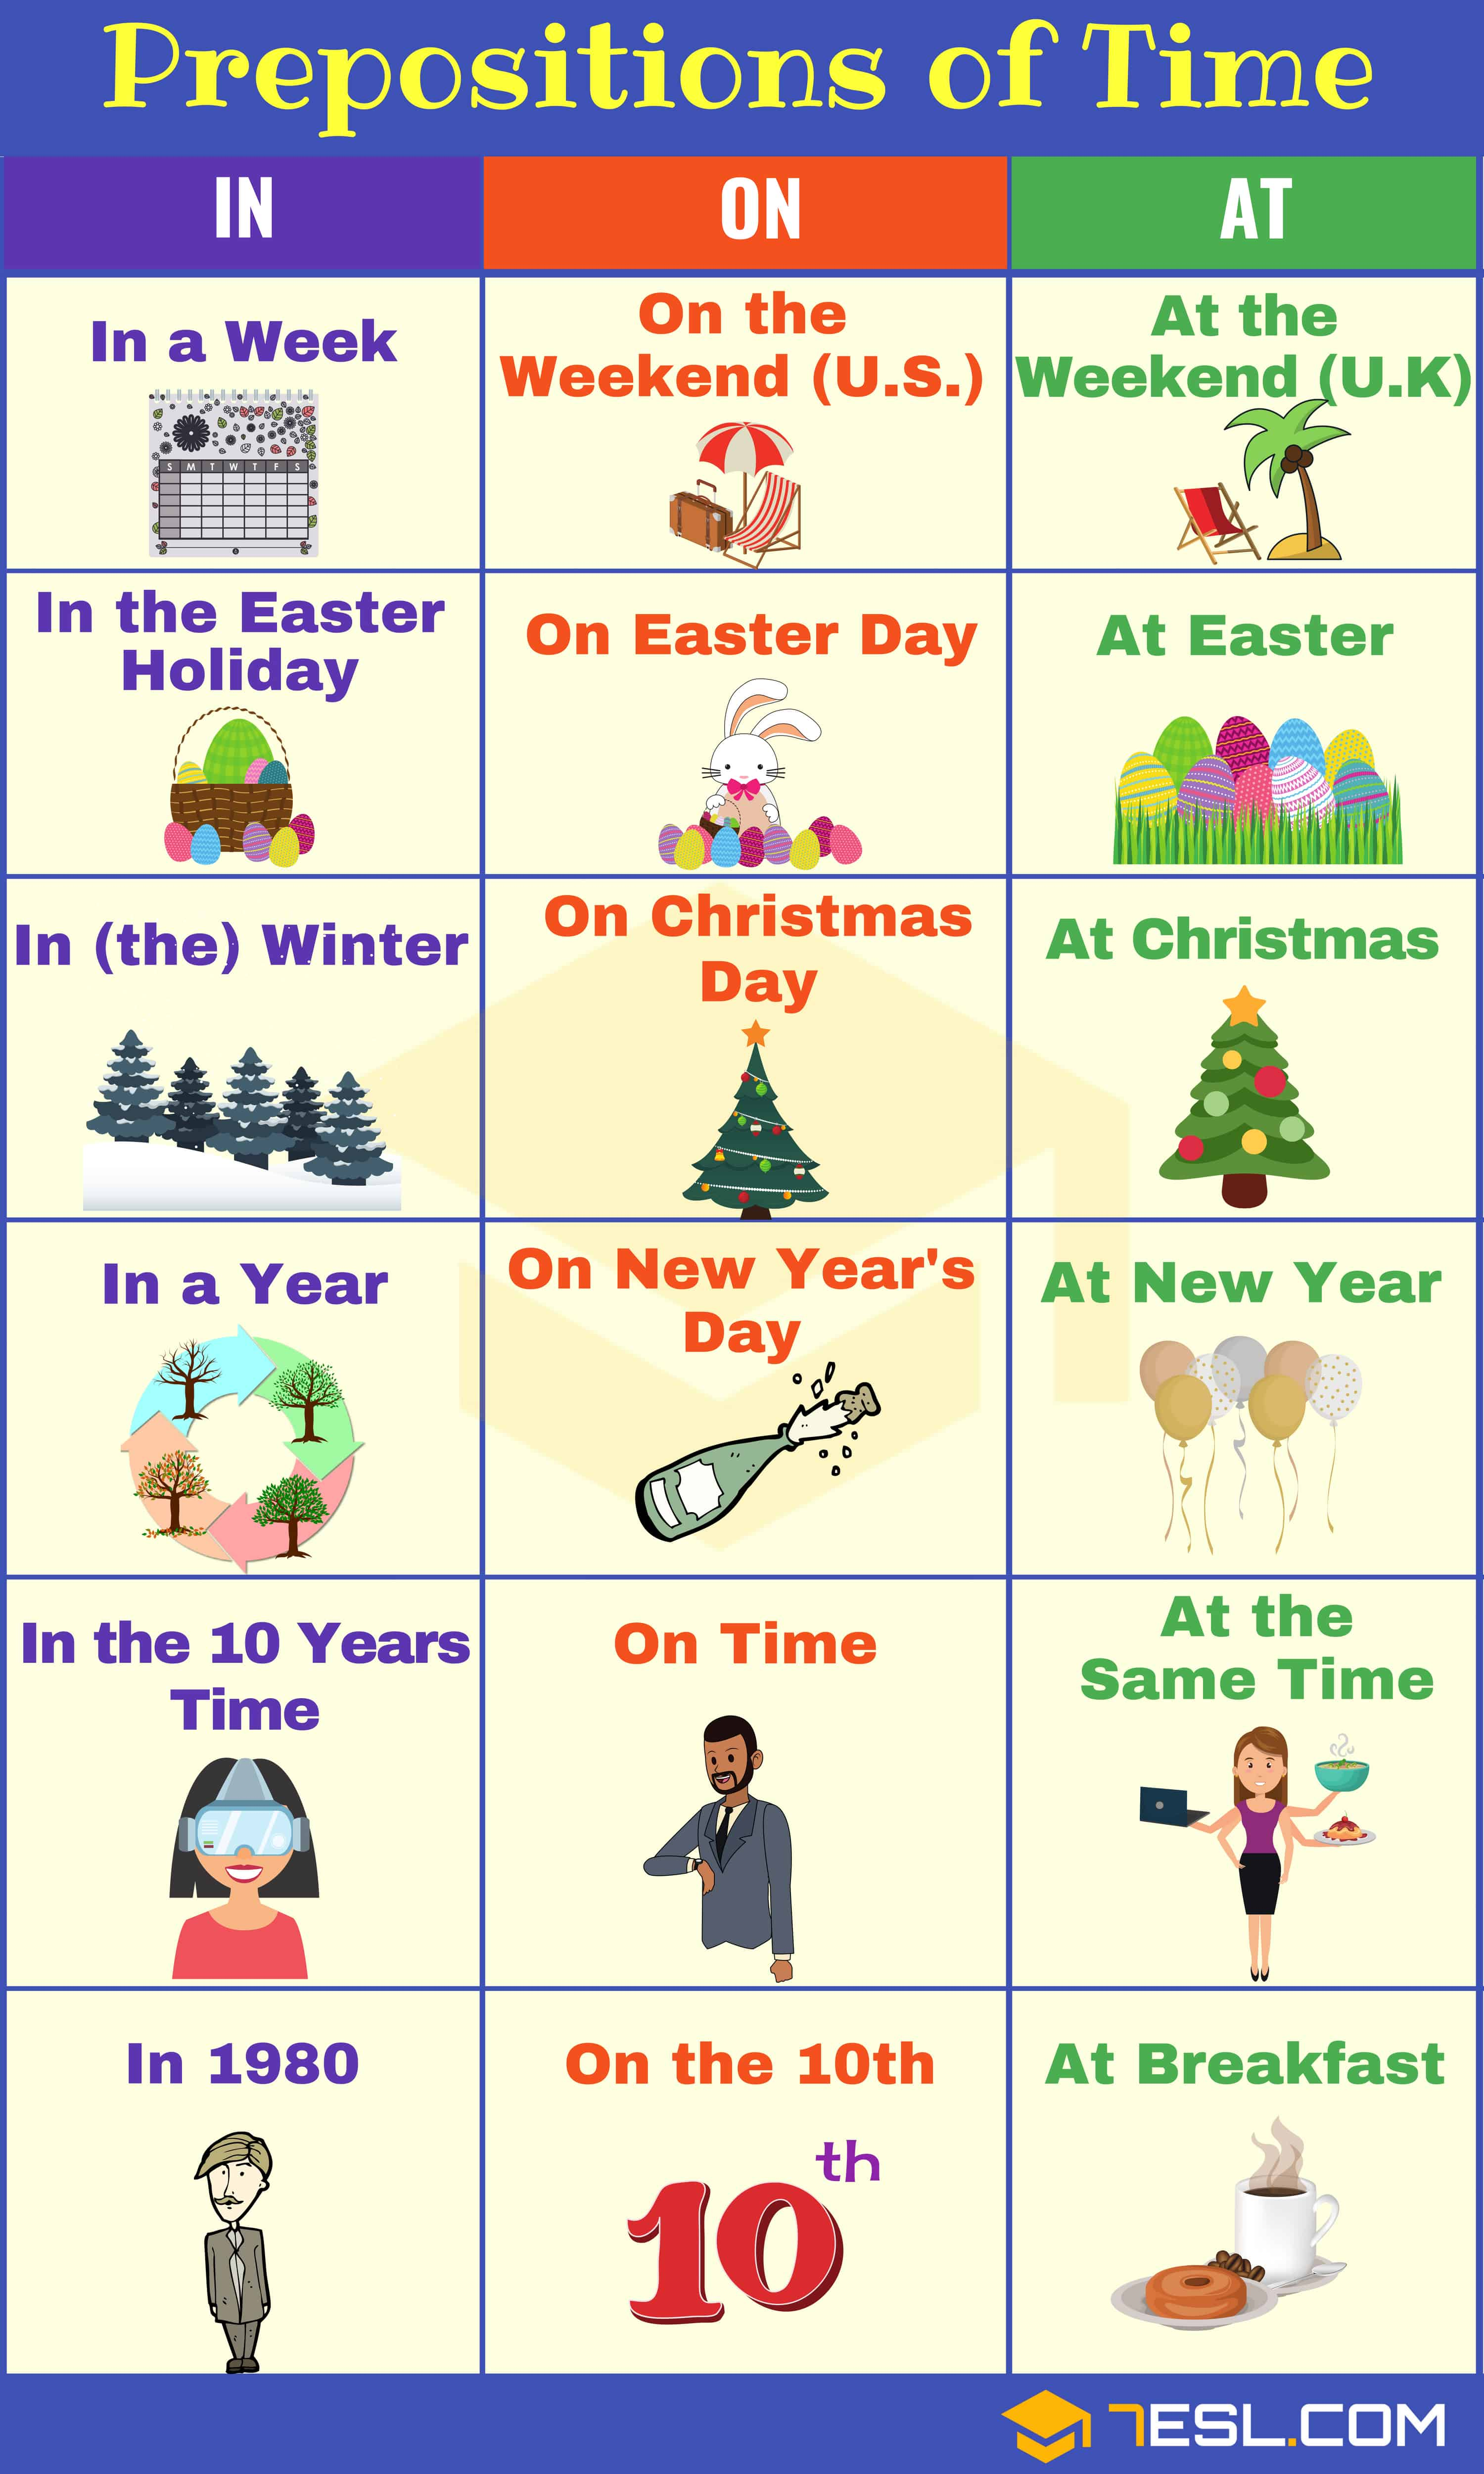 How To Use Prepositions Of Time At In On Correctly In